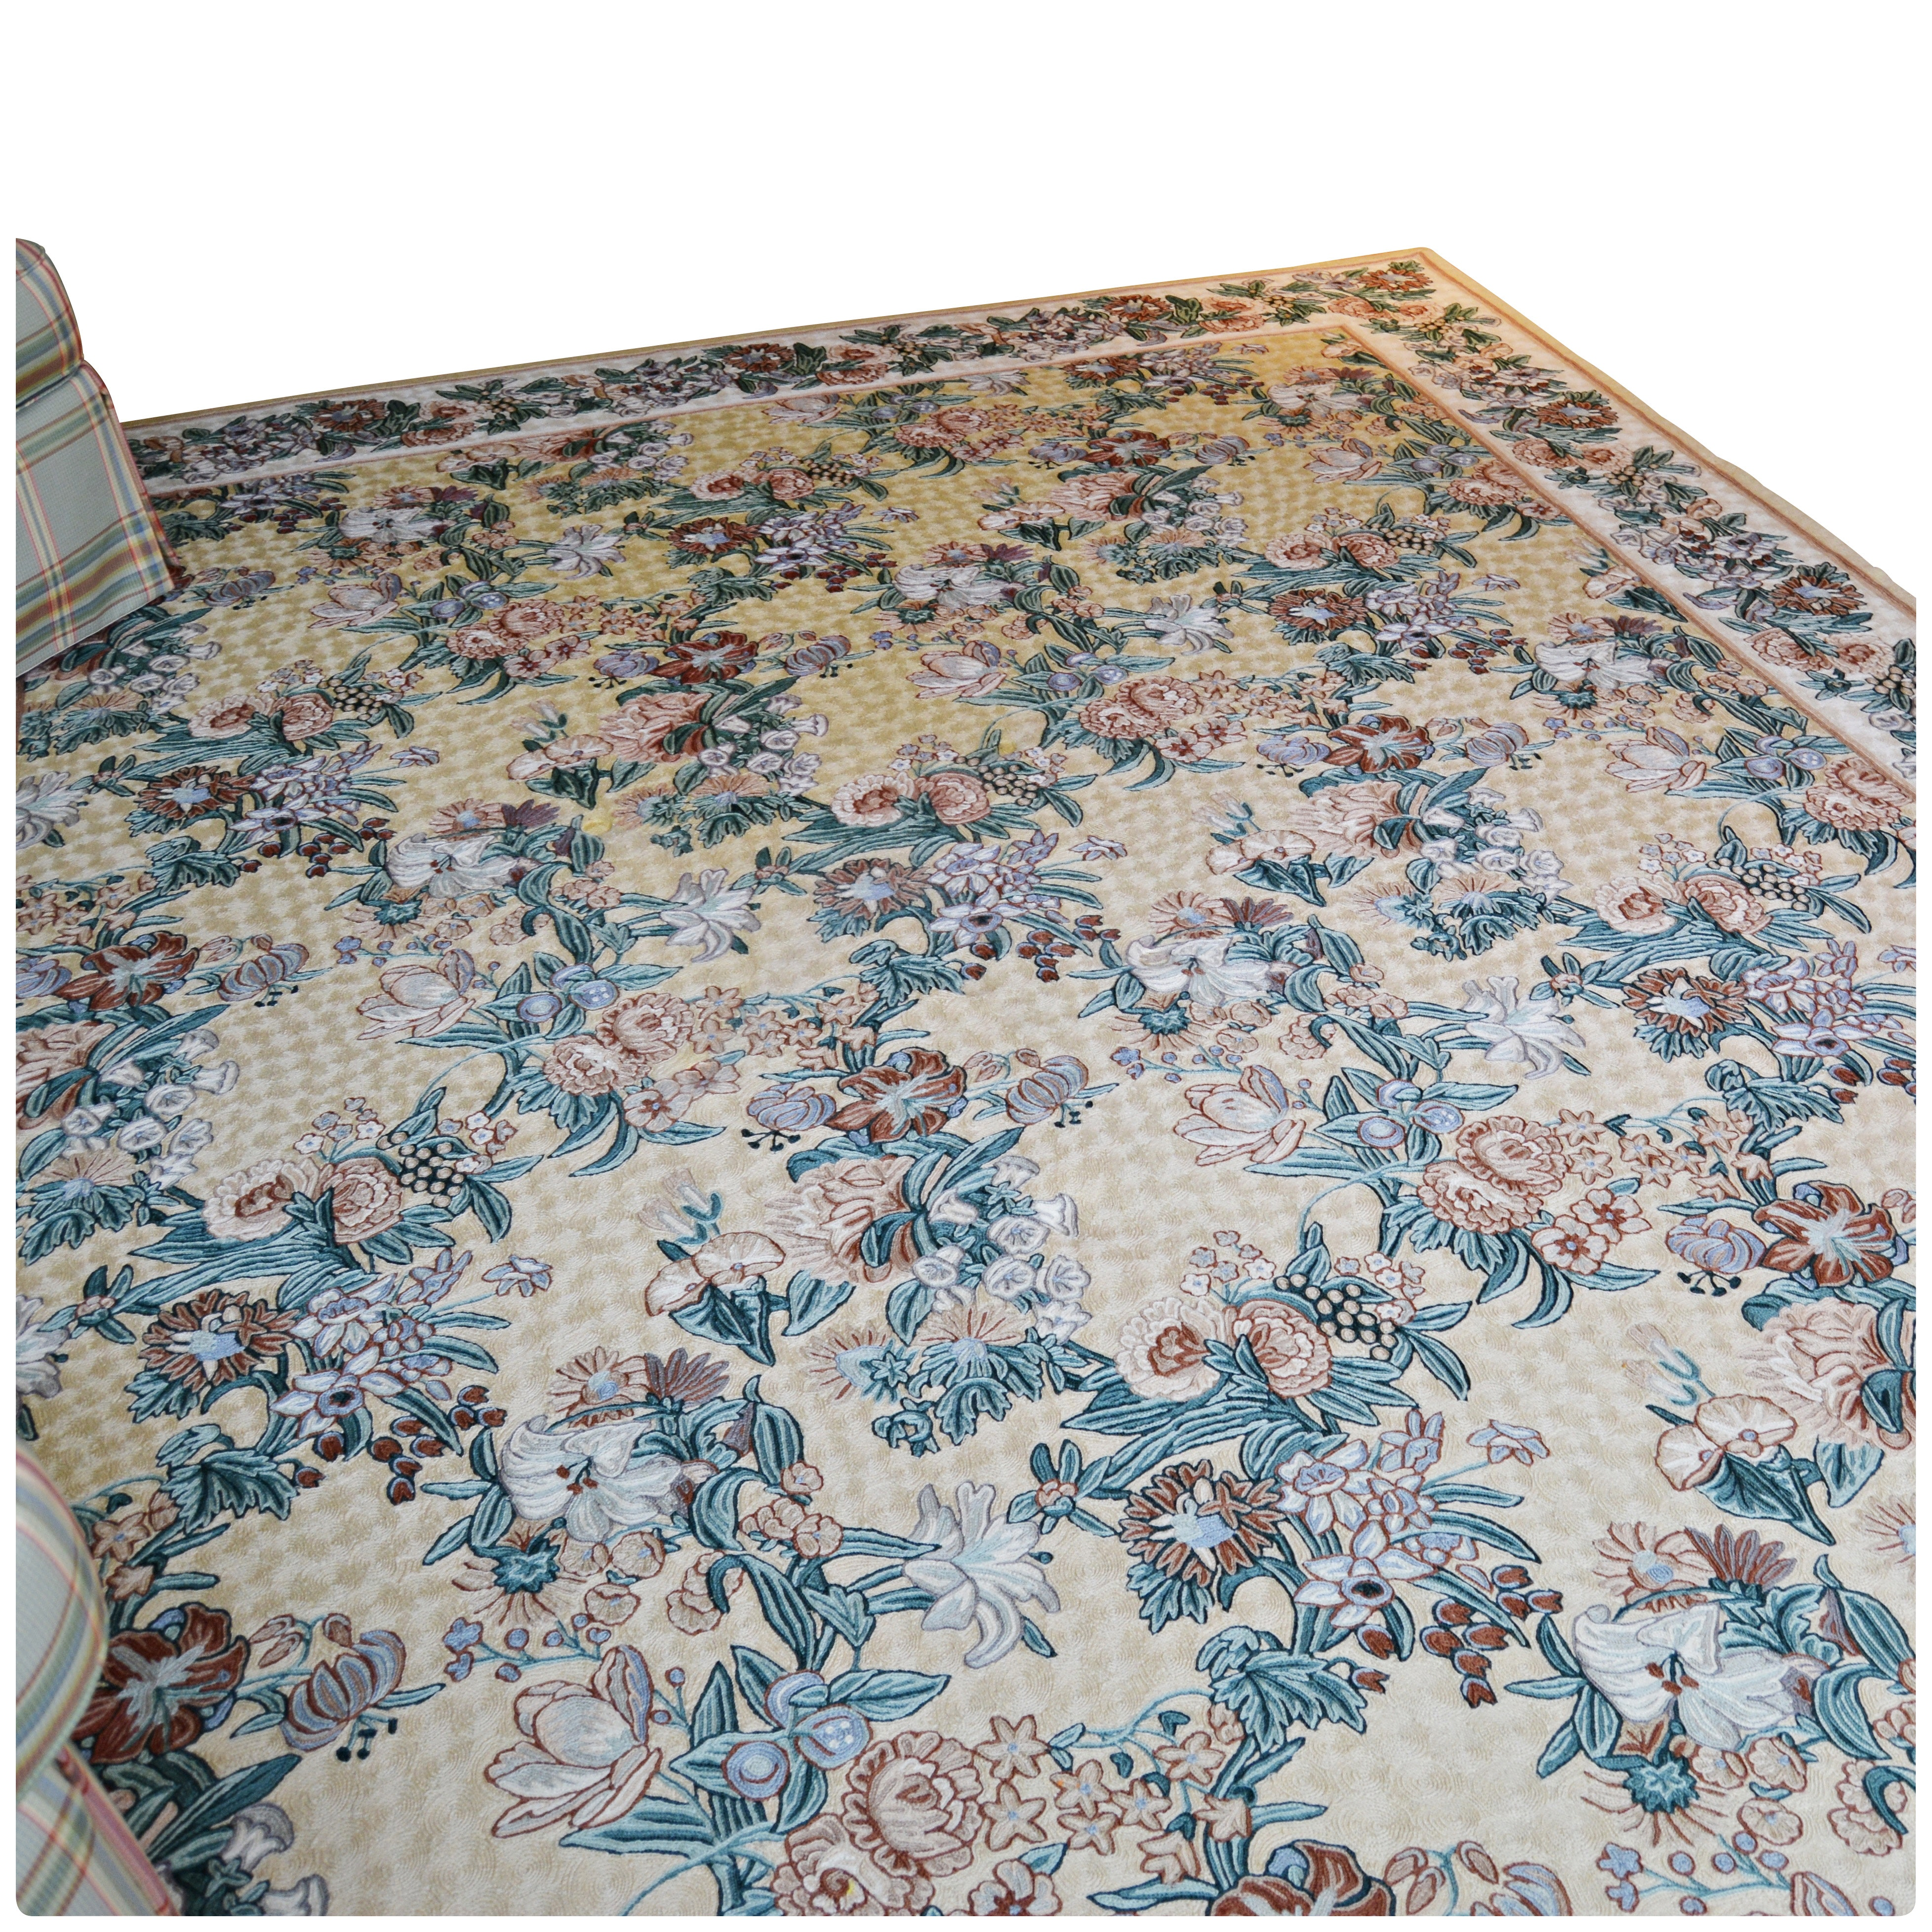 Tufted Floral Wool Area Rug